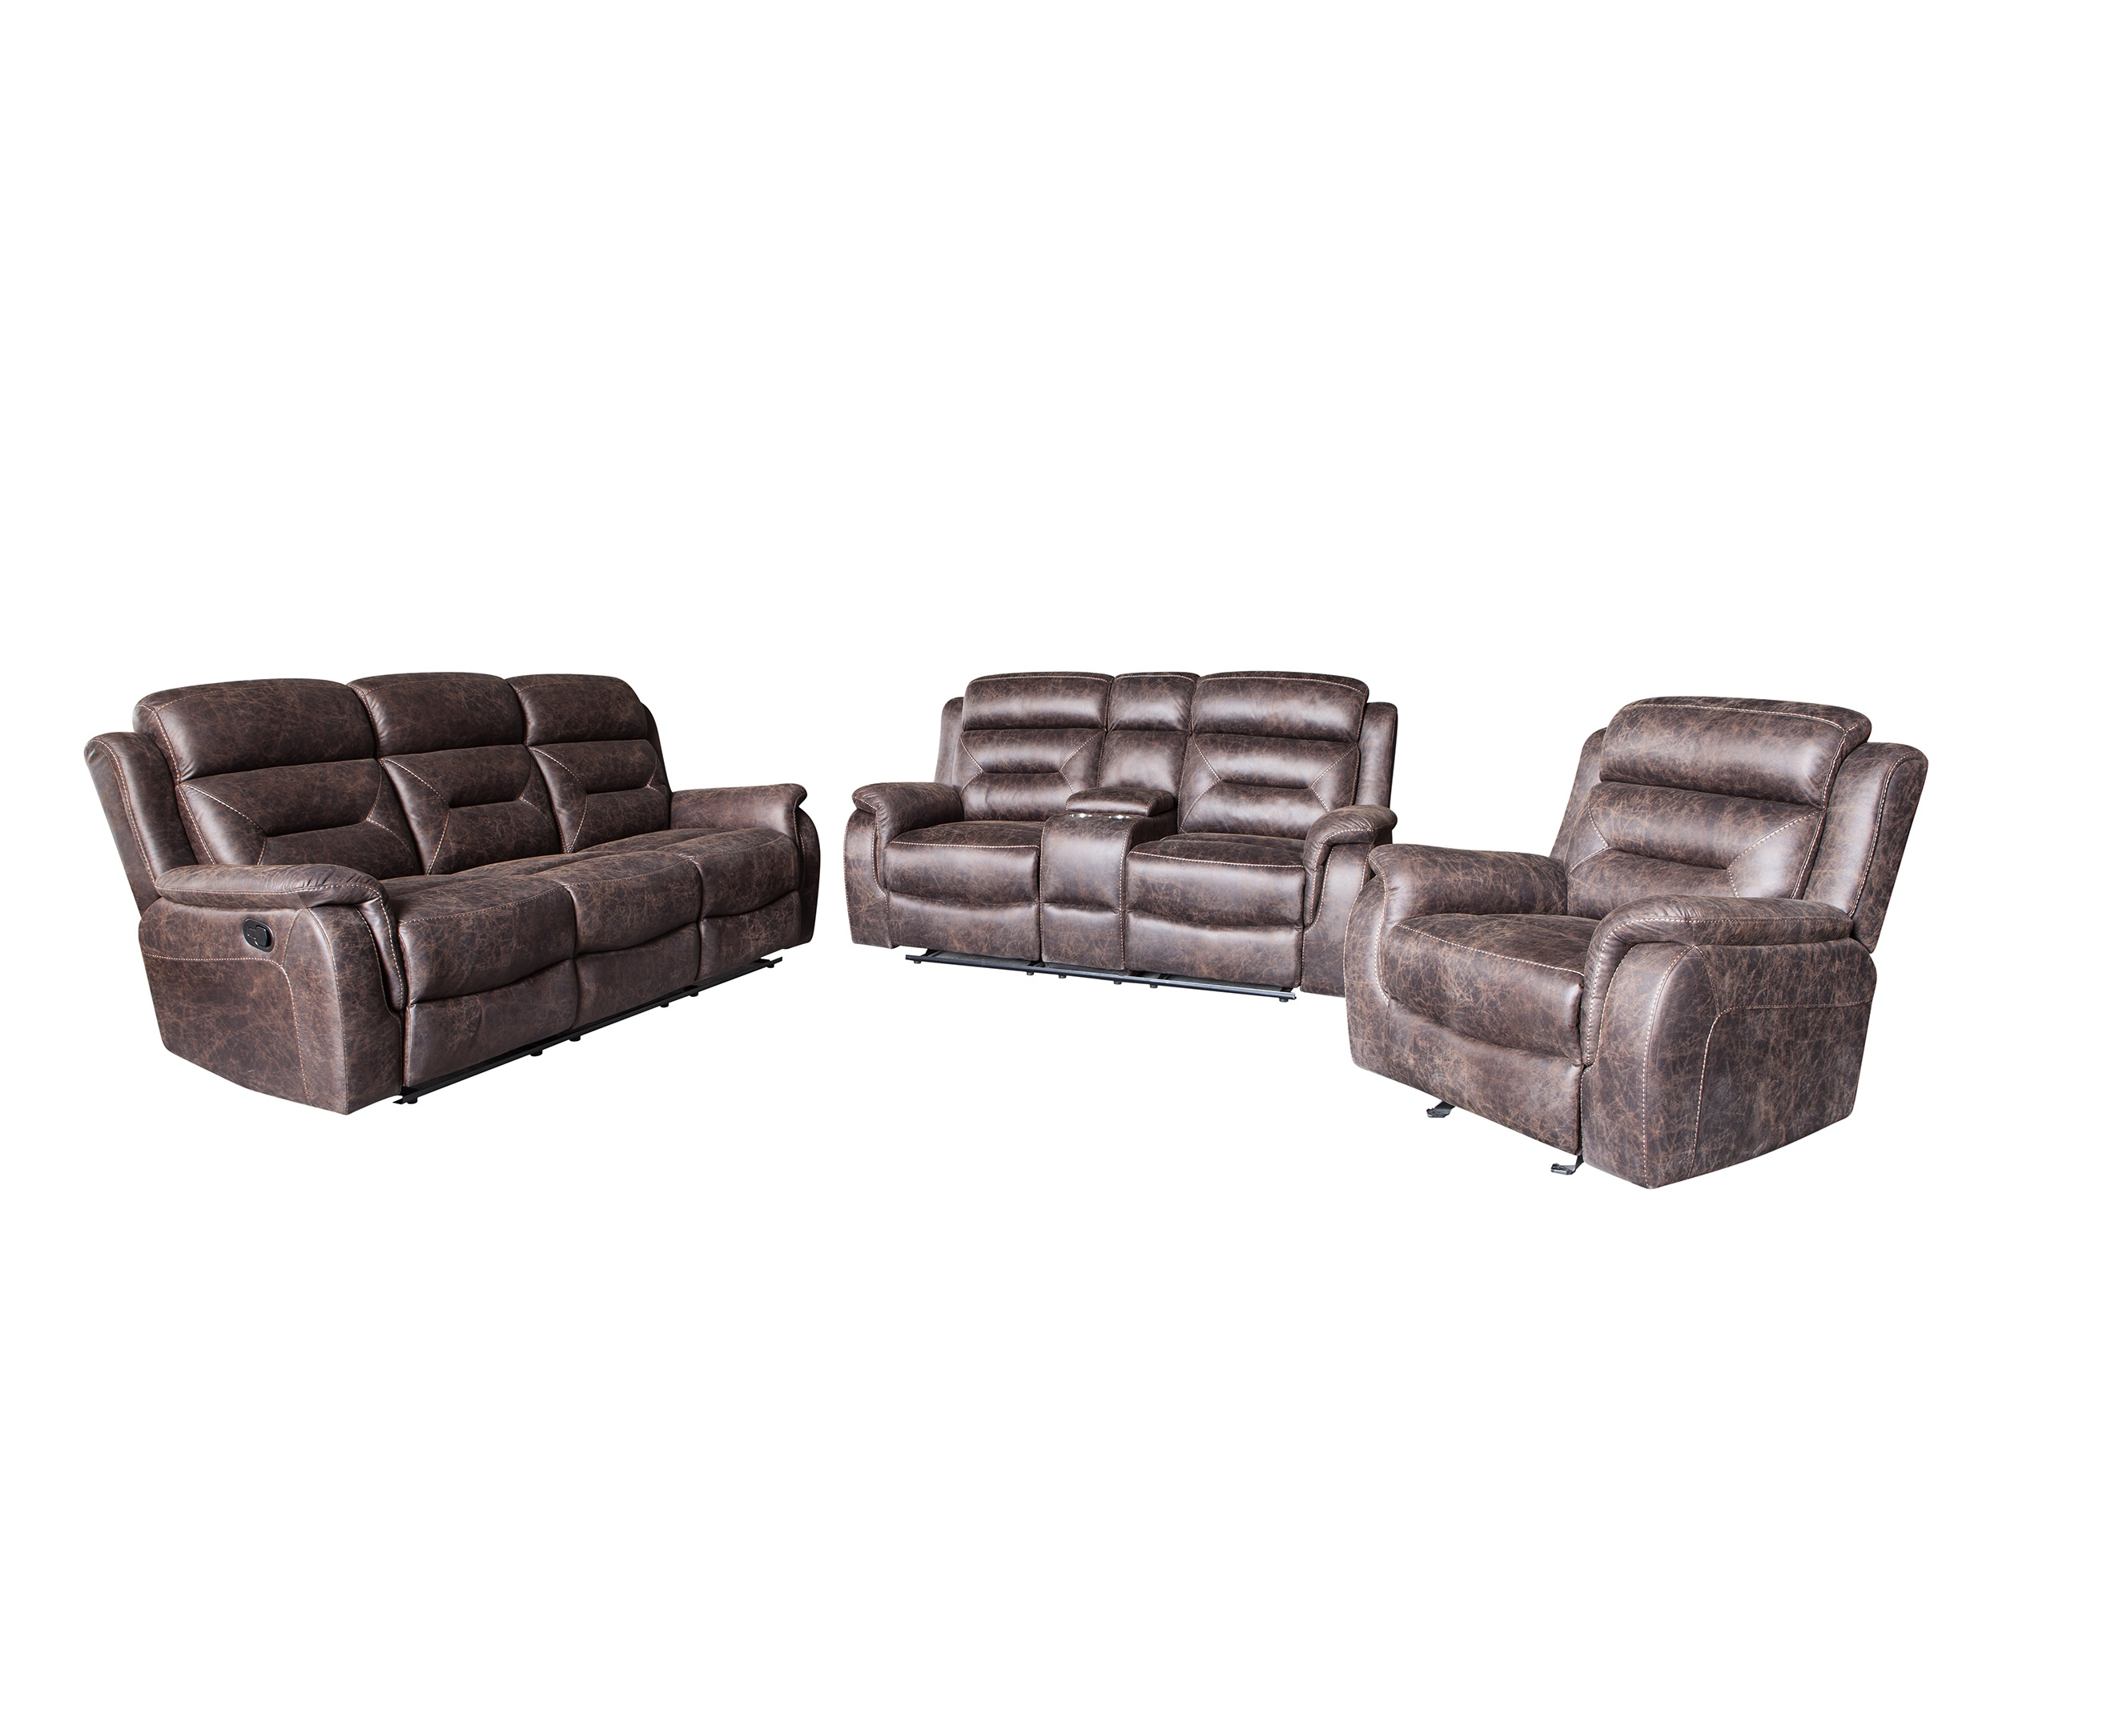 Modern living room furniture 3+2+1 leather recliner sofa